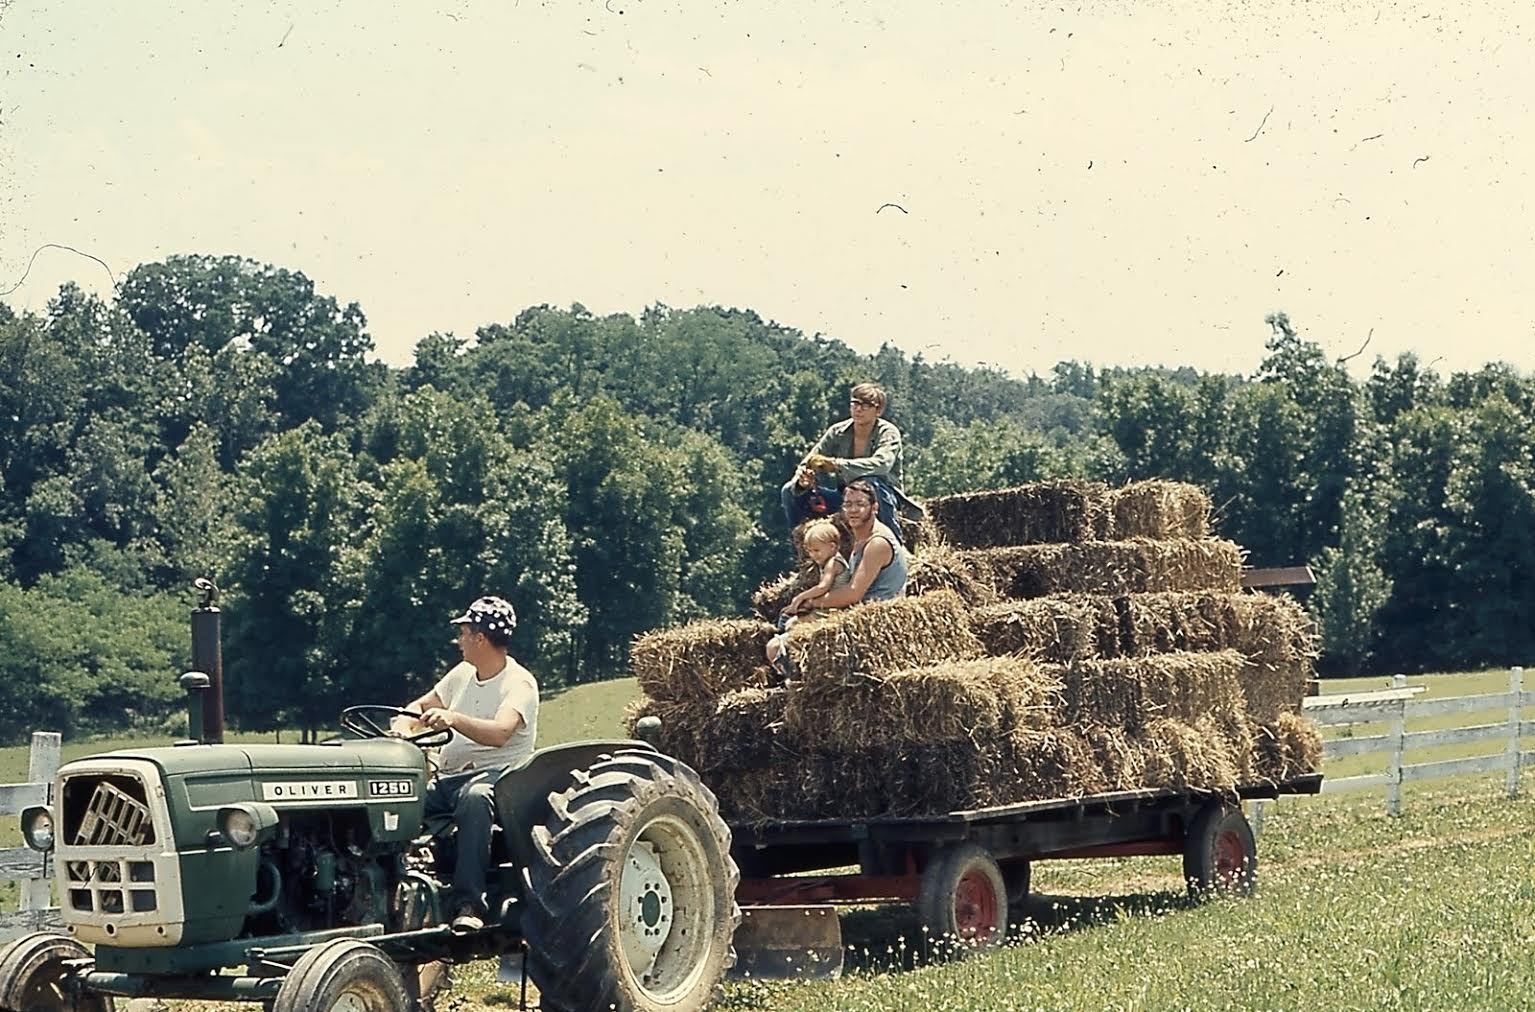 THROWBACK THURSDAY: Making hay while the sun shines – thankful for the work ethic I learned